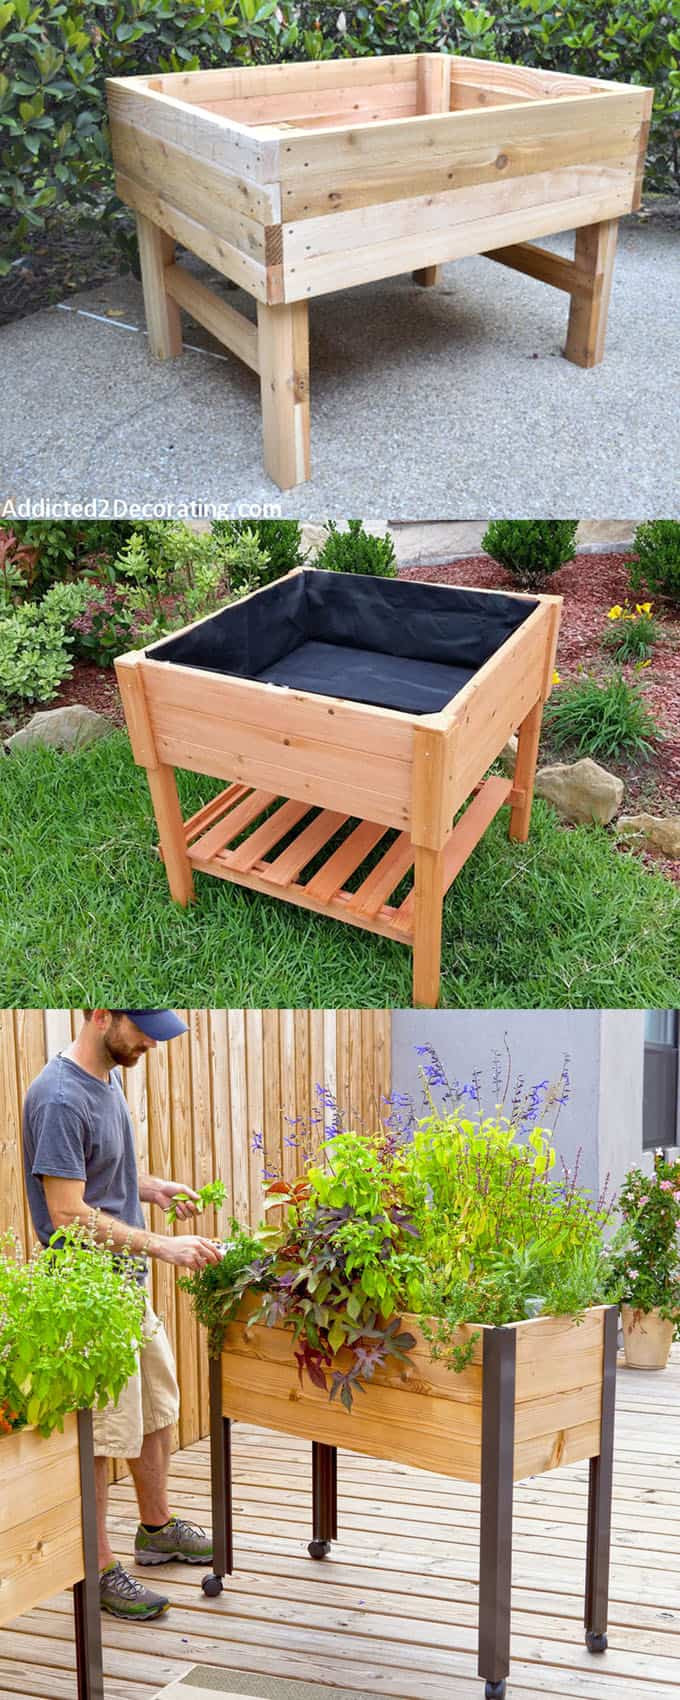 Best ideas about DIY Raised Planter Boxes . Save or Pin 28 Amazing DIY Raised Bed Gardens A Piece Rainbow Now.